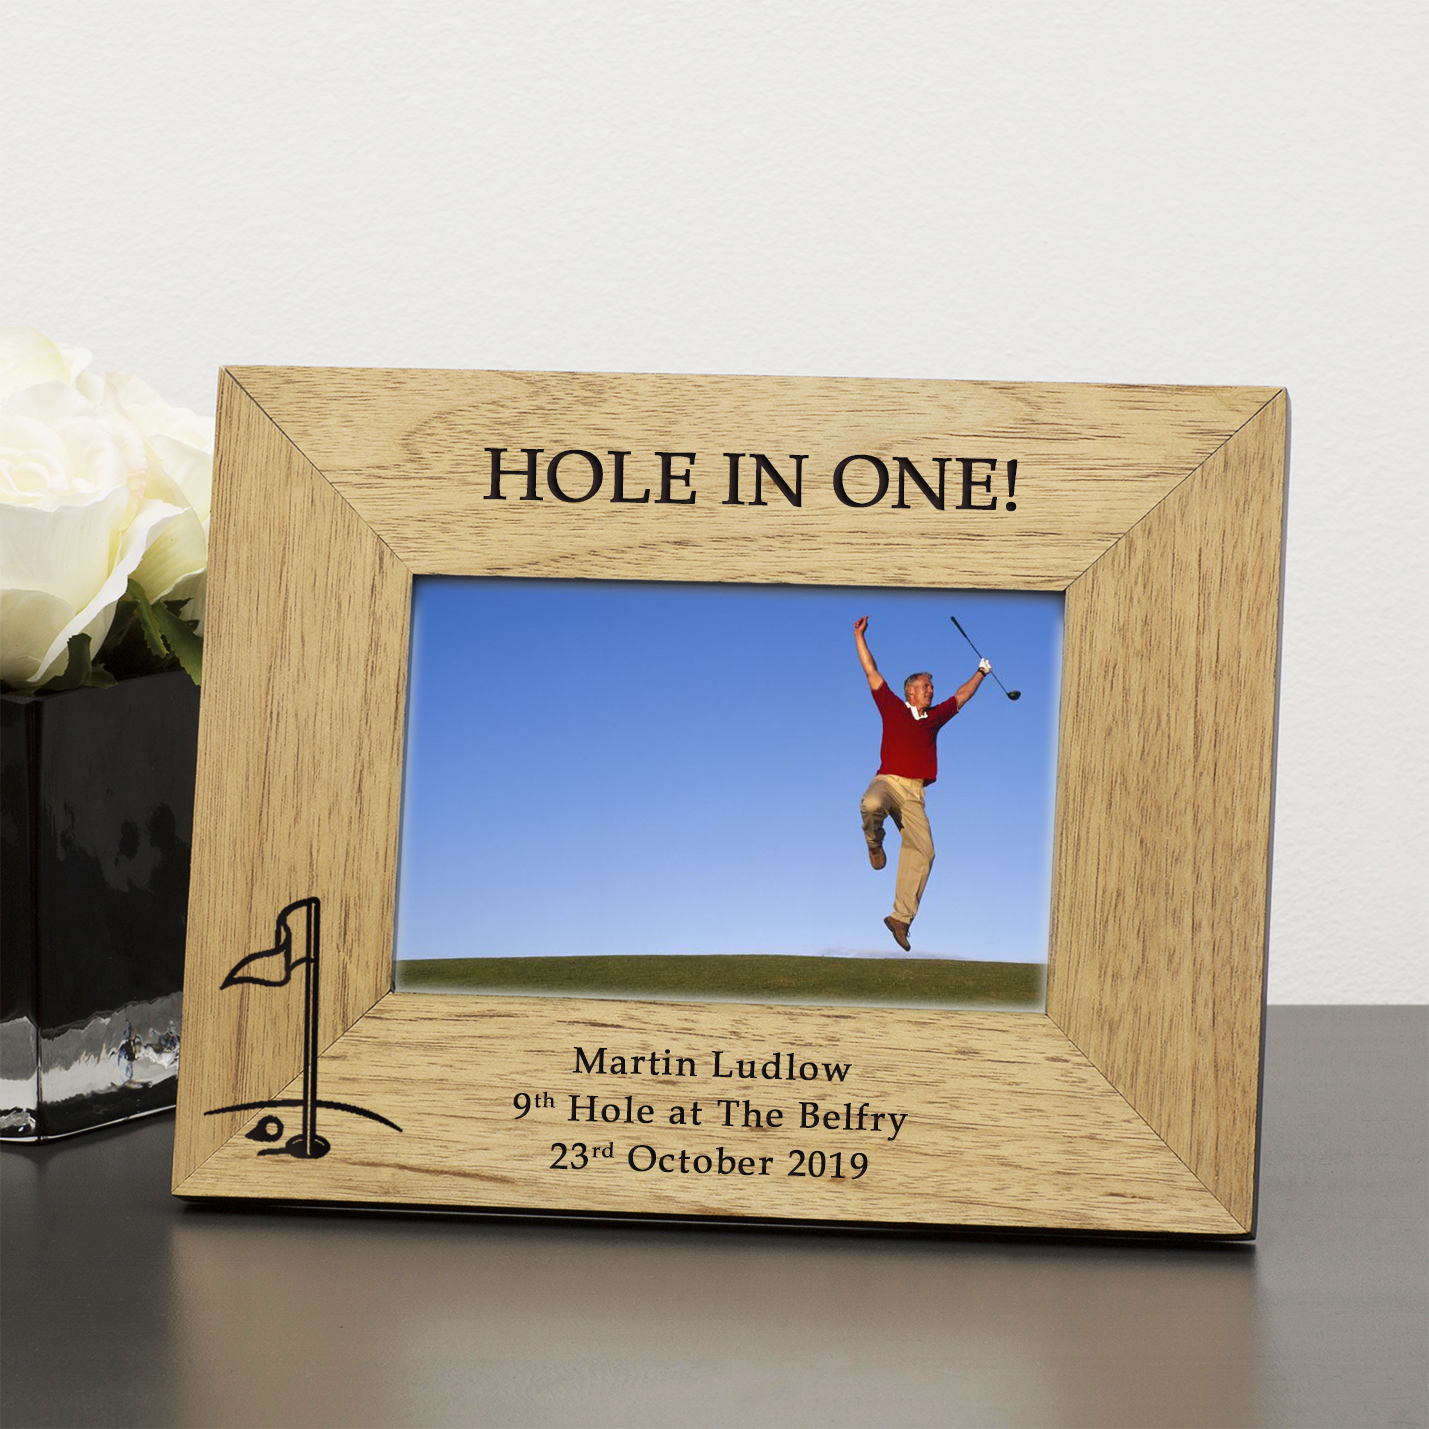 Hole in one wood frame 6x4